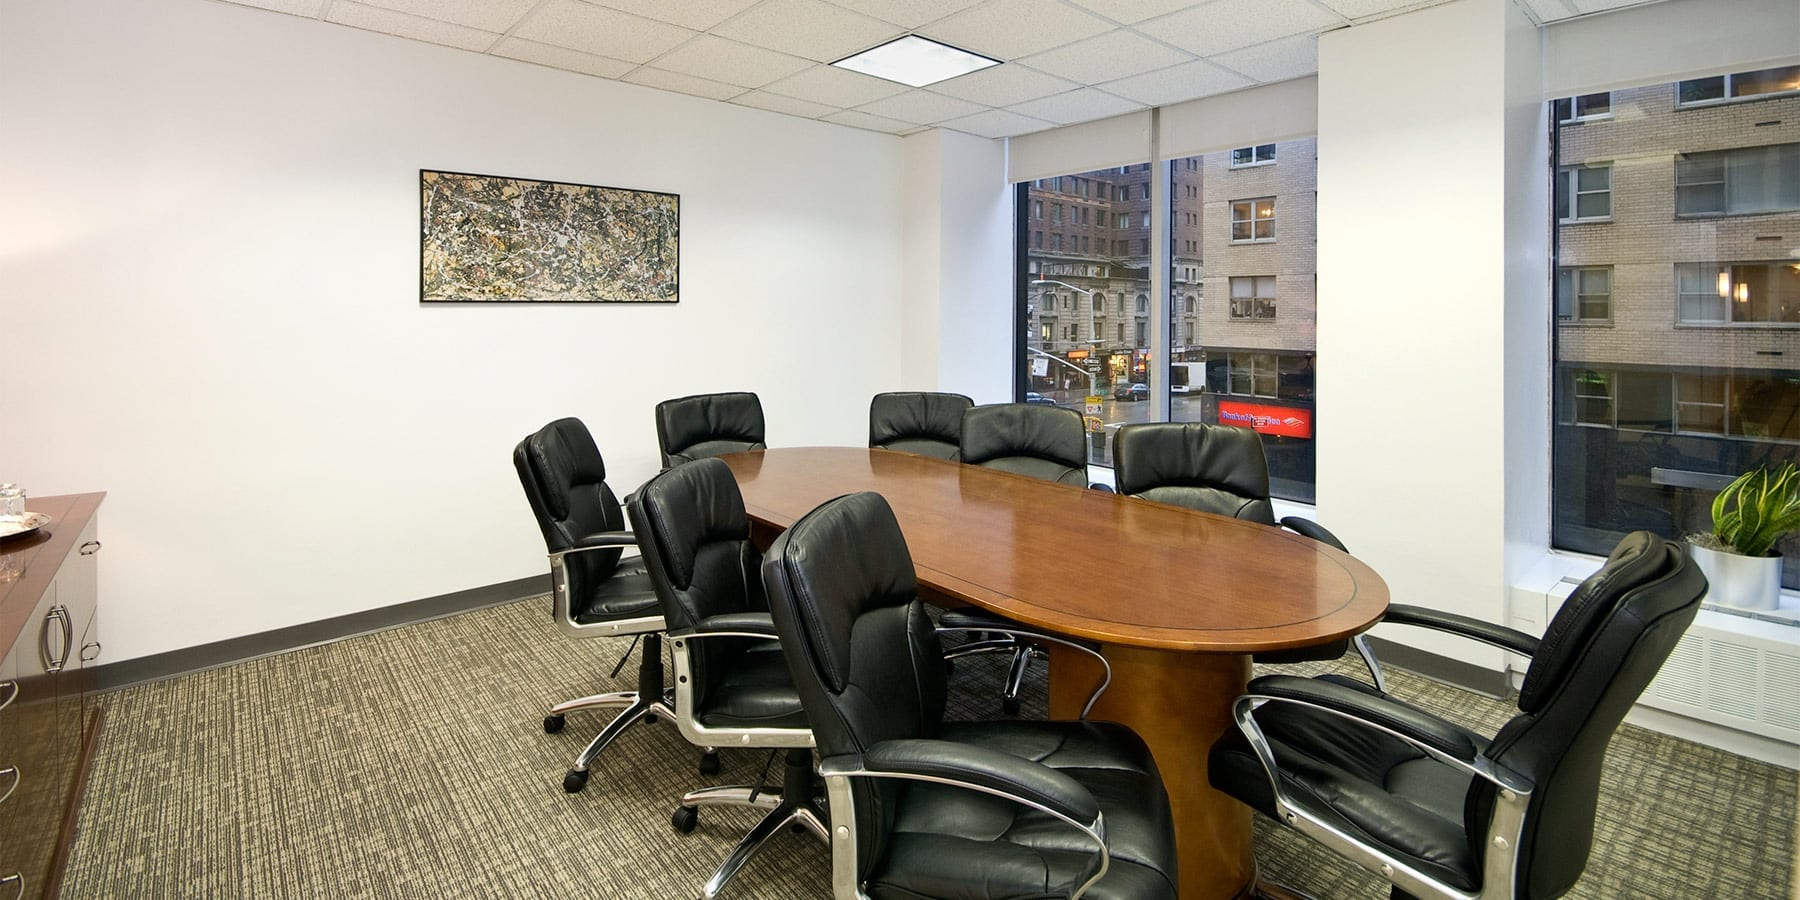 nyc rentals scottsdaletemporary room in temporary breather hourly new pics suites startup city rent york your time rooms atlanta is office for to it meeting tulsatemporary space